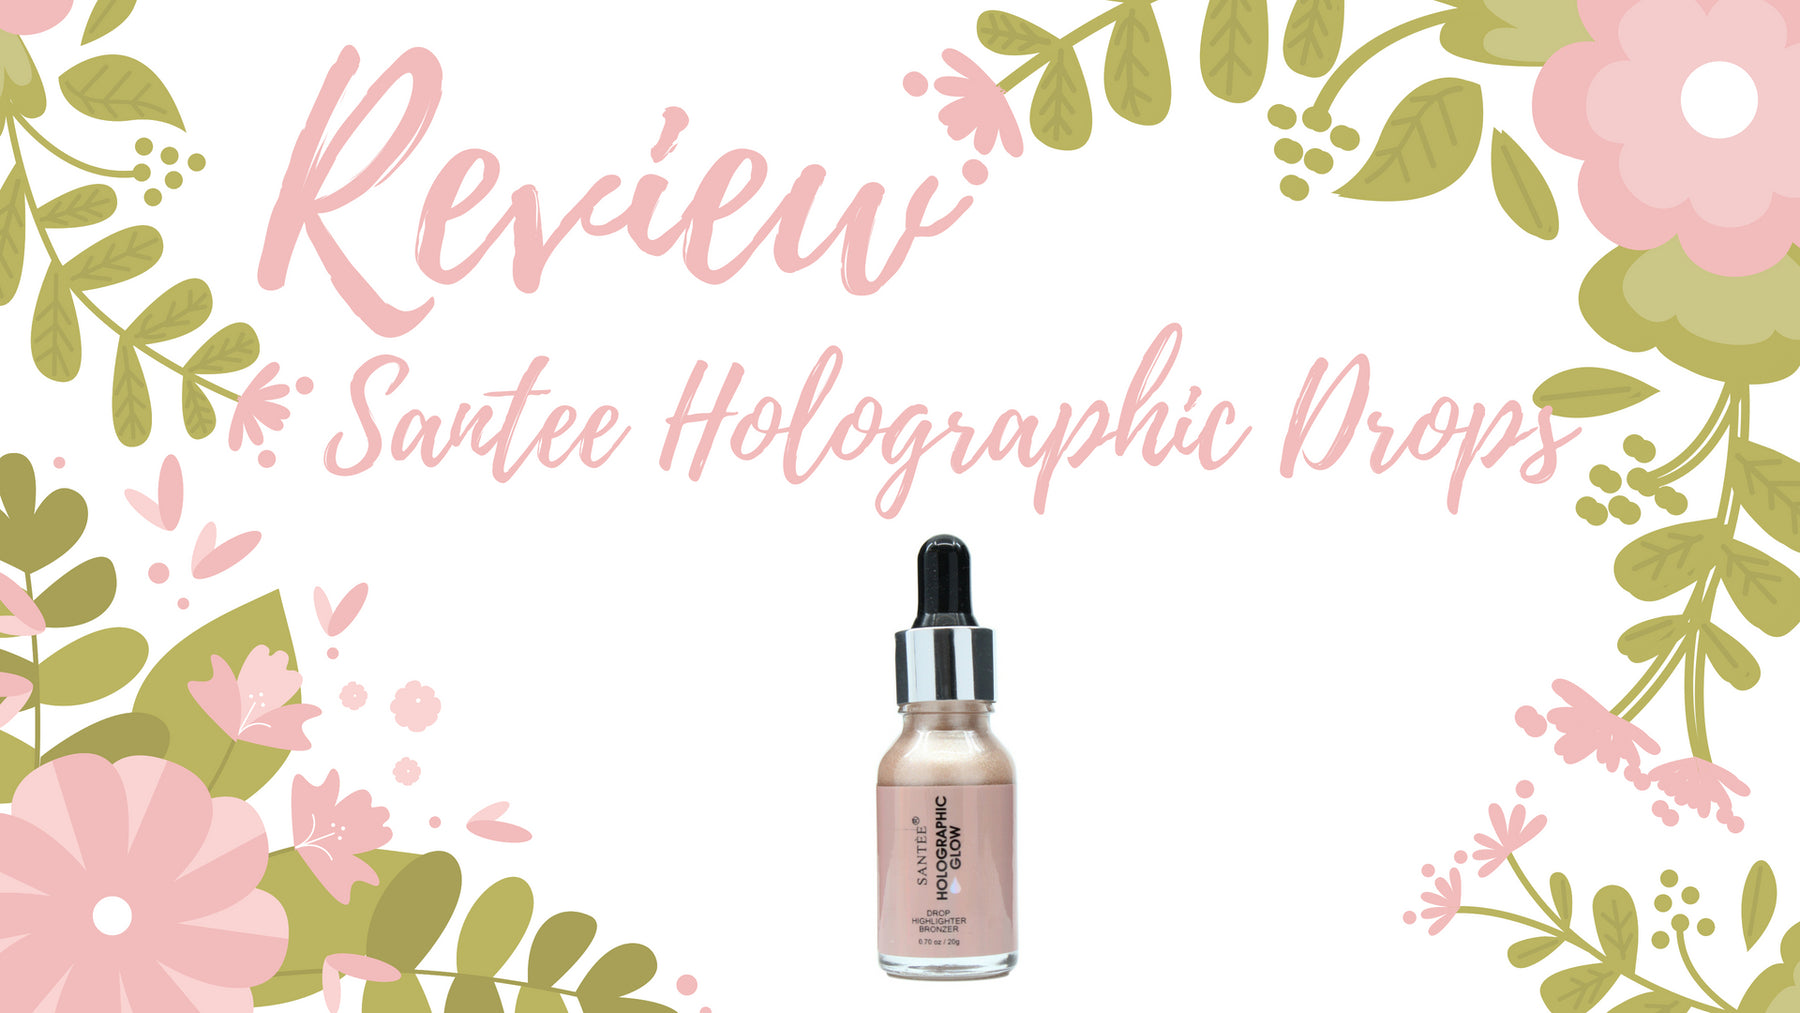 REVIEW: Santee Holographic Glow Drop